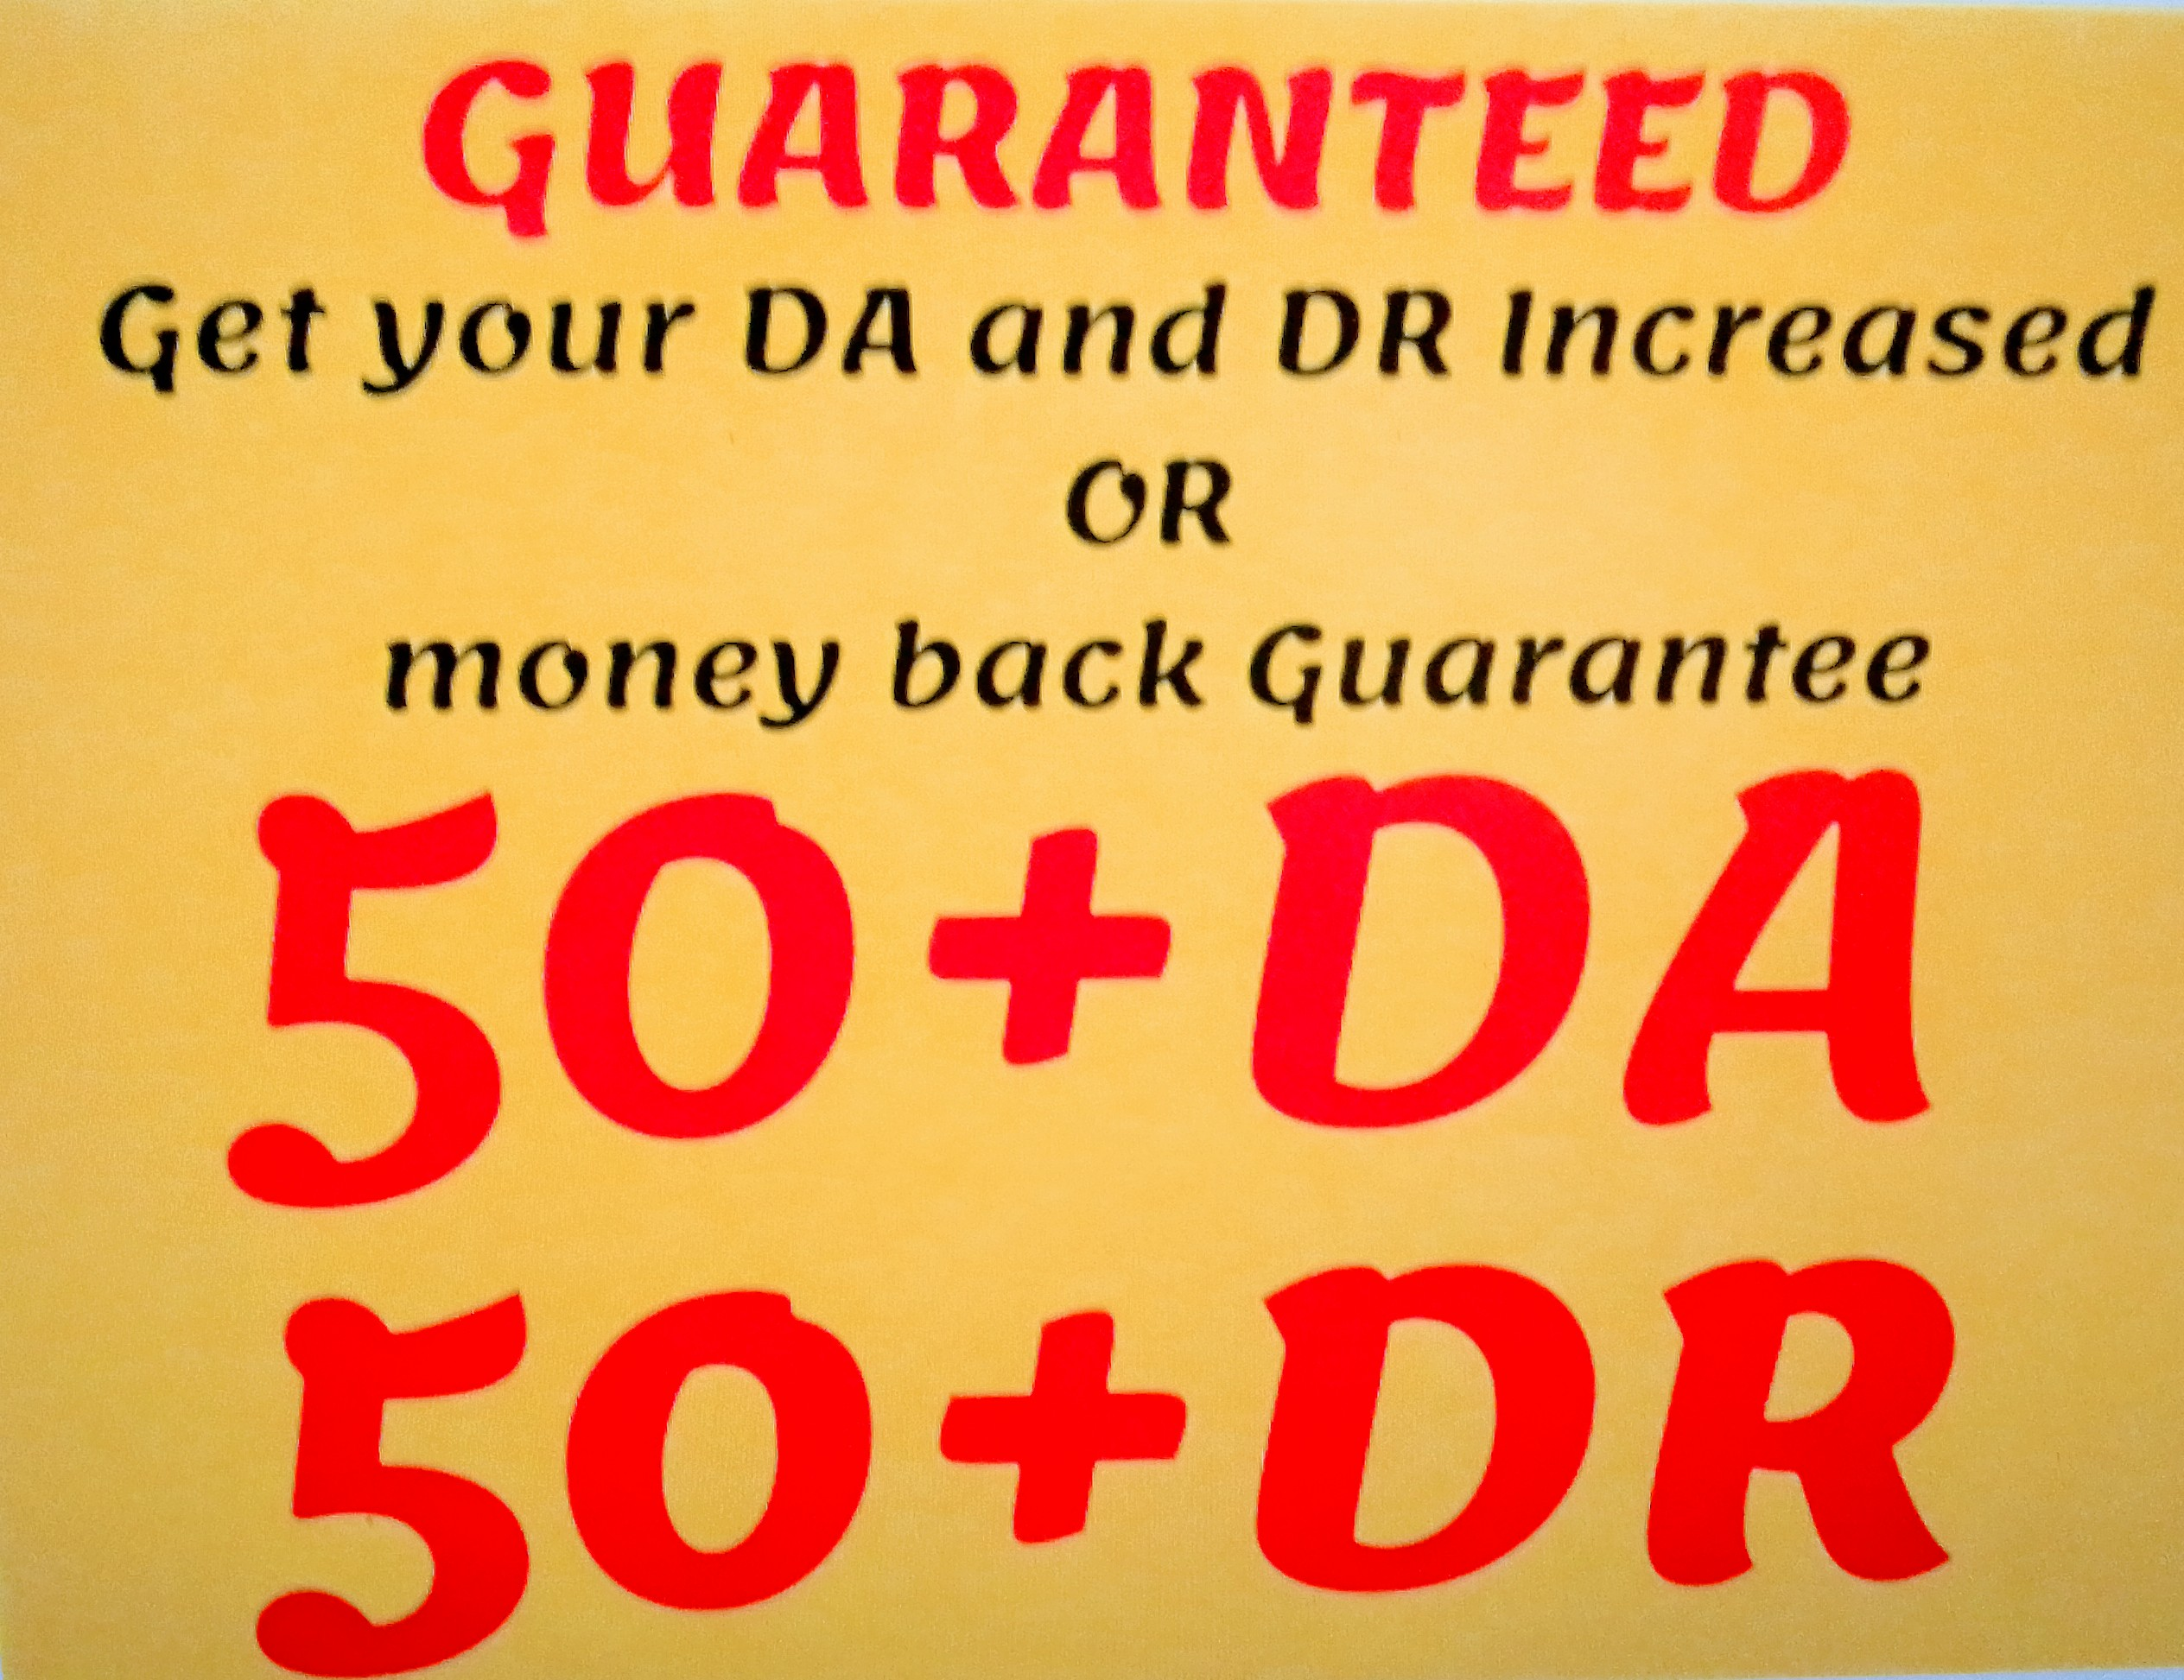 I will do mix 100 backlink with 50+ da and 50+ Dr backlink for your website